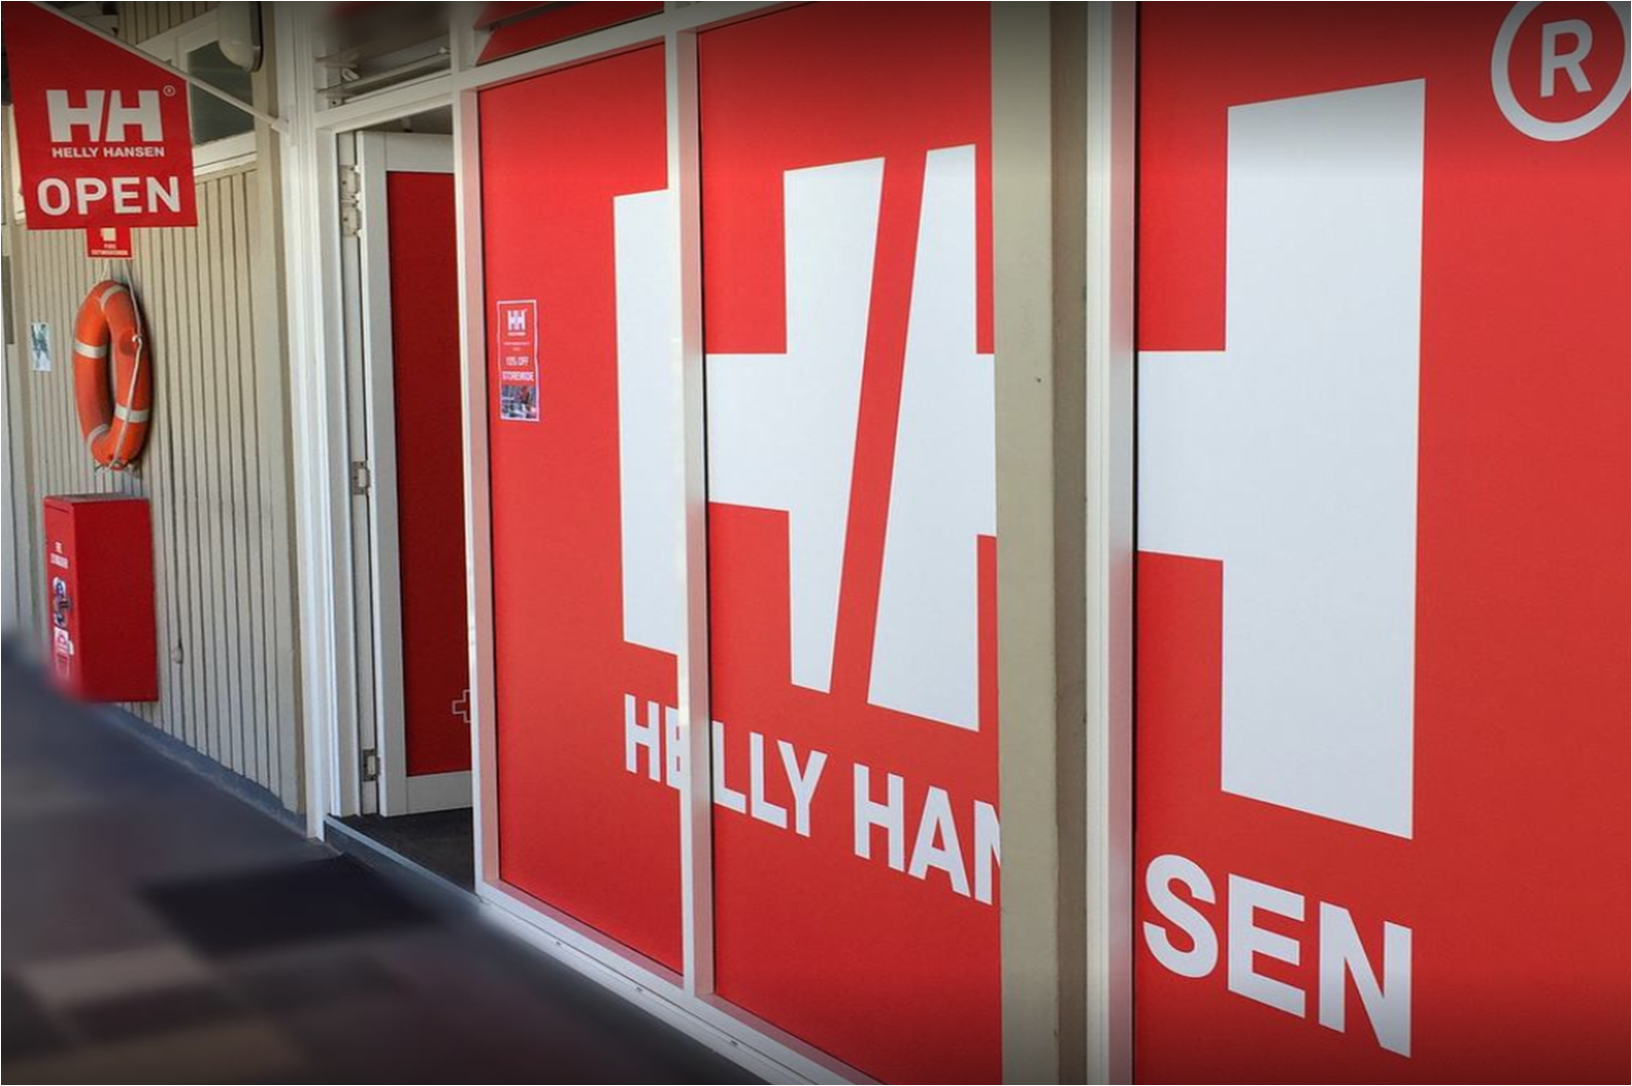 Helly Hansen SHOP @ MIDDLE HARBOUR